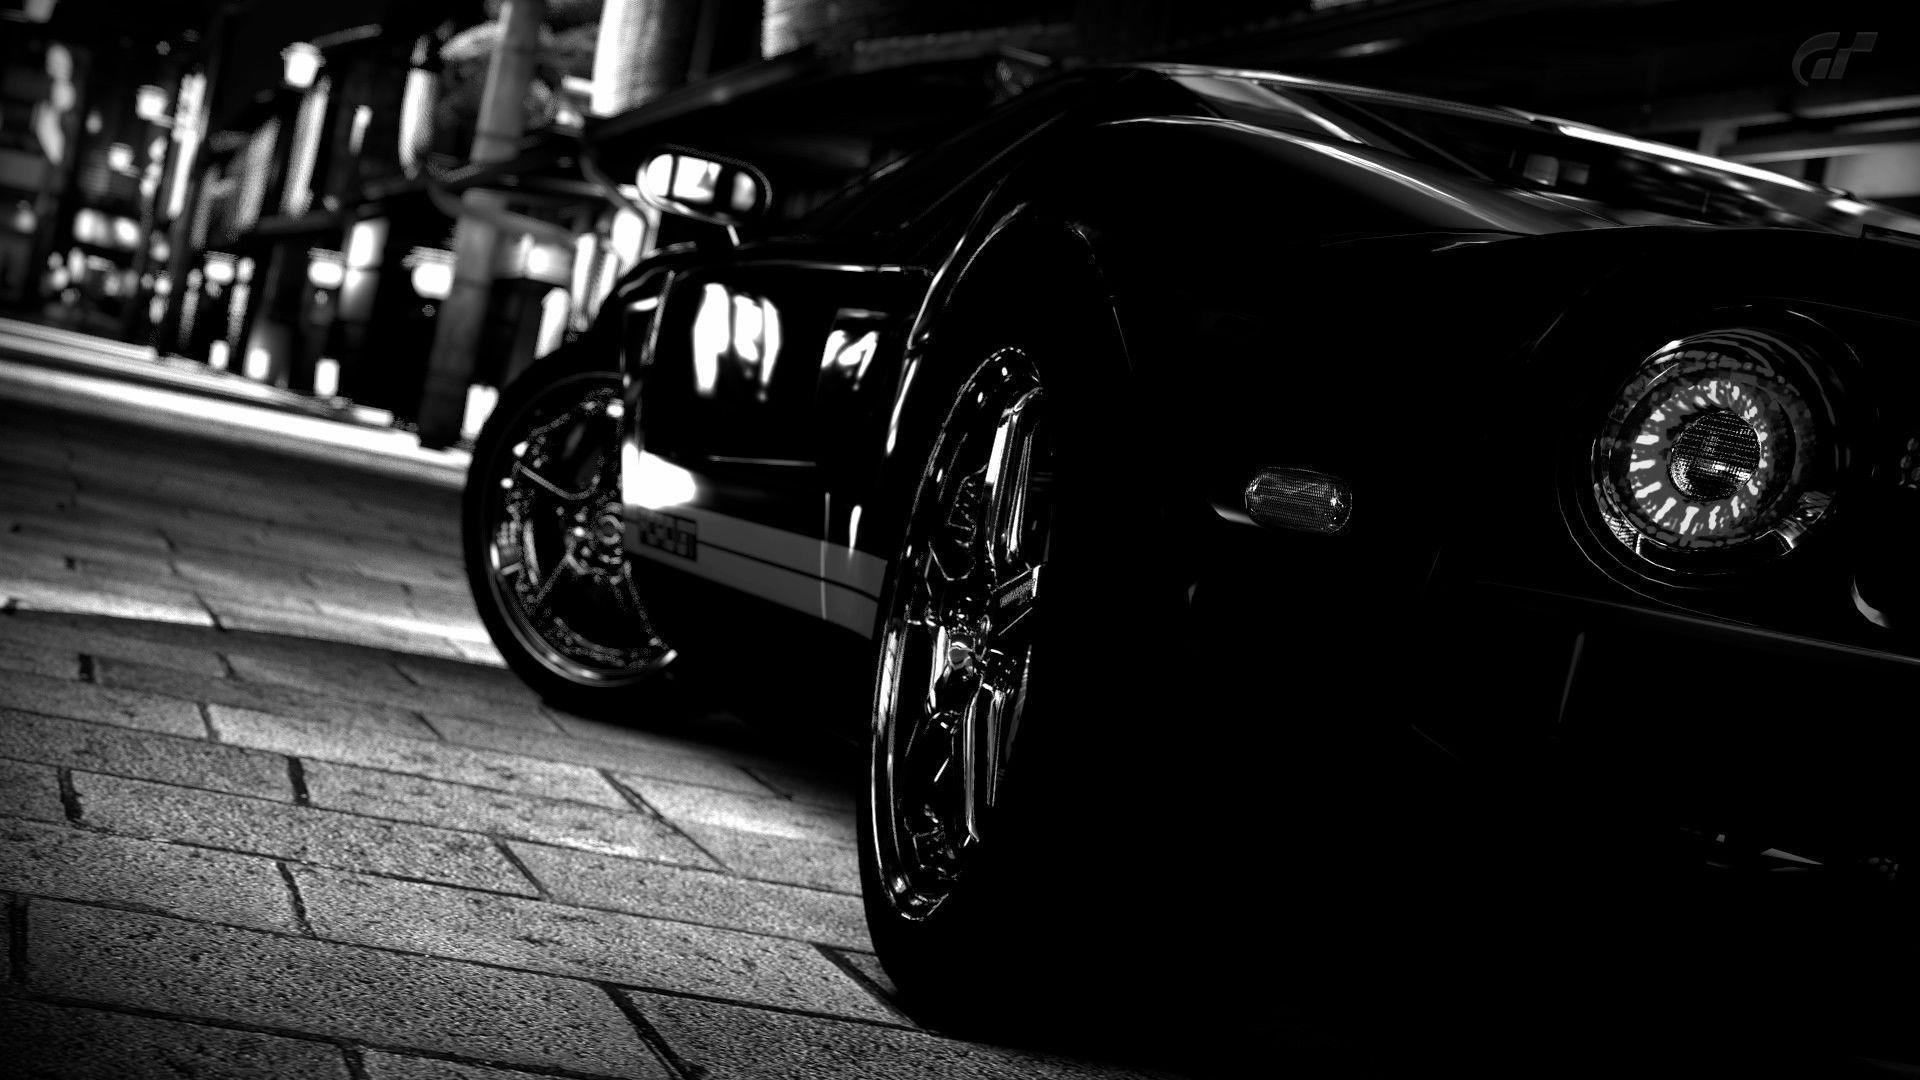 Black Car Hd Wallpapers Top Free Black Car Hd Backgrounds Wallpaperaccess